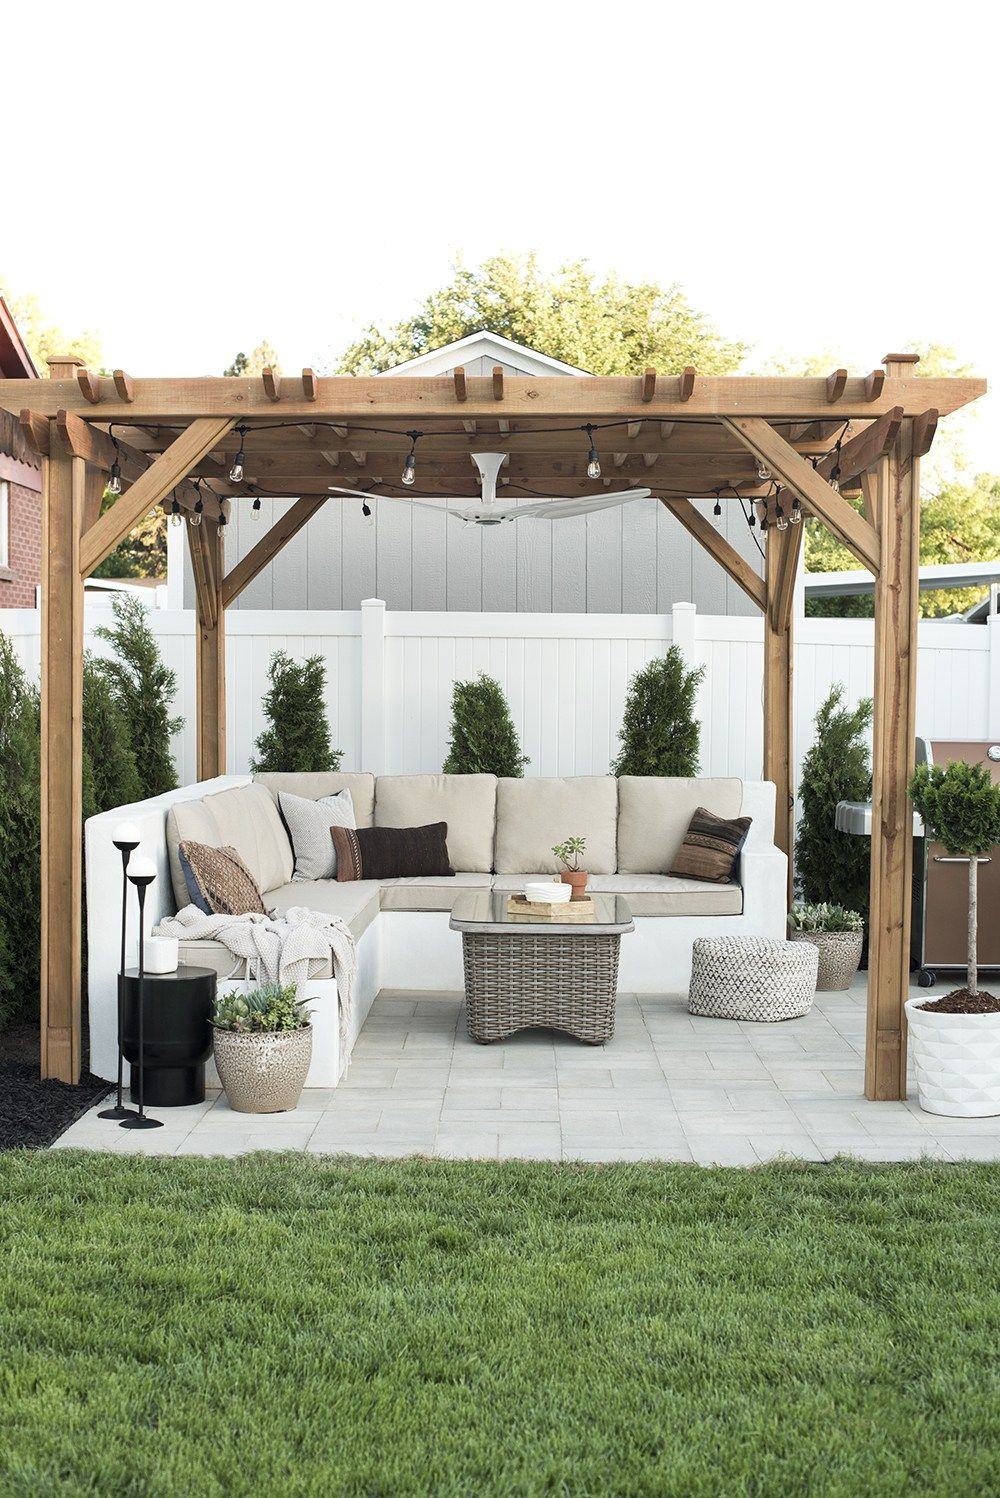 16 Best Pergola Ideas For The Backyard How To Use A Pergola intended for Ideas For Gazebos Backyard